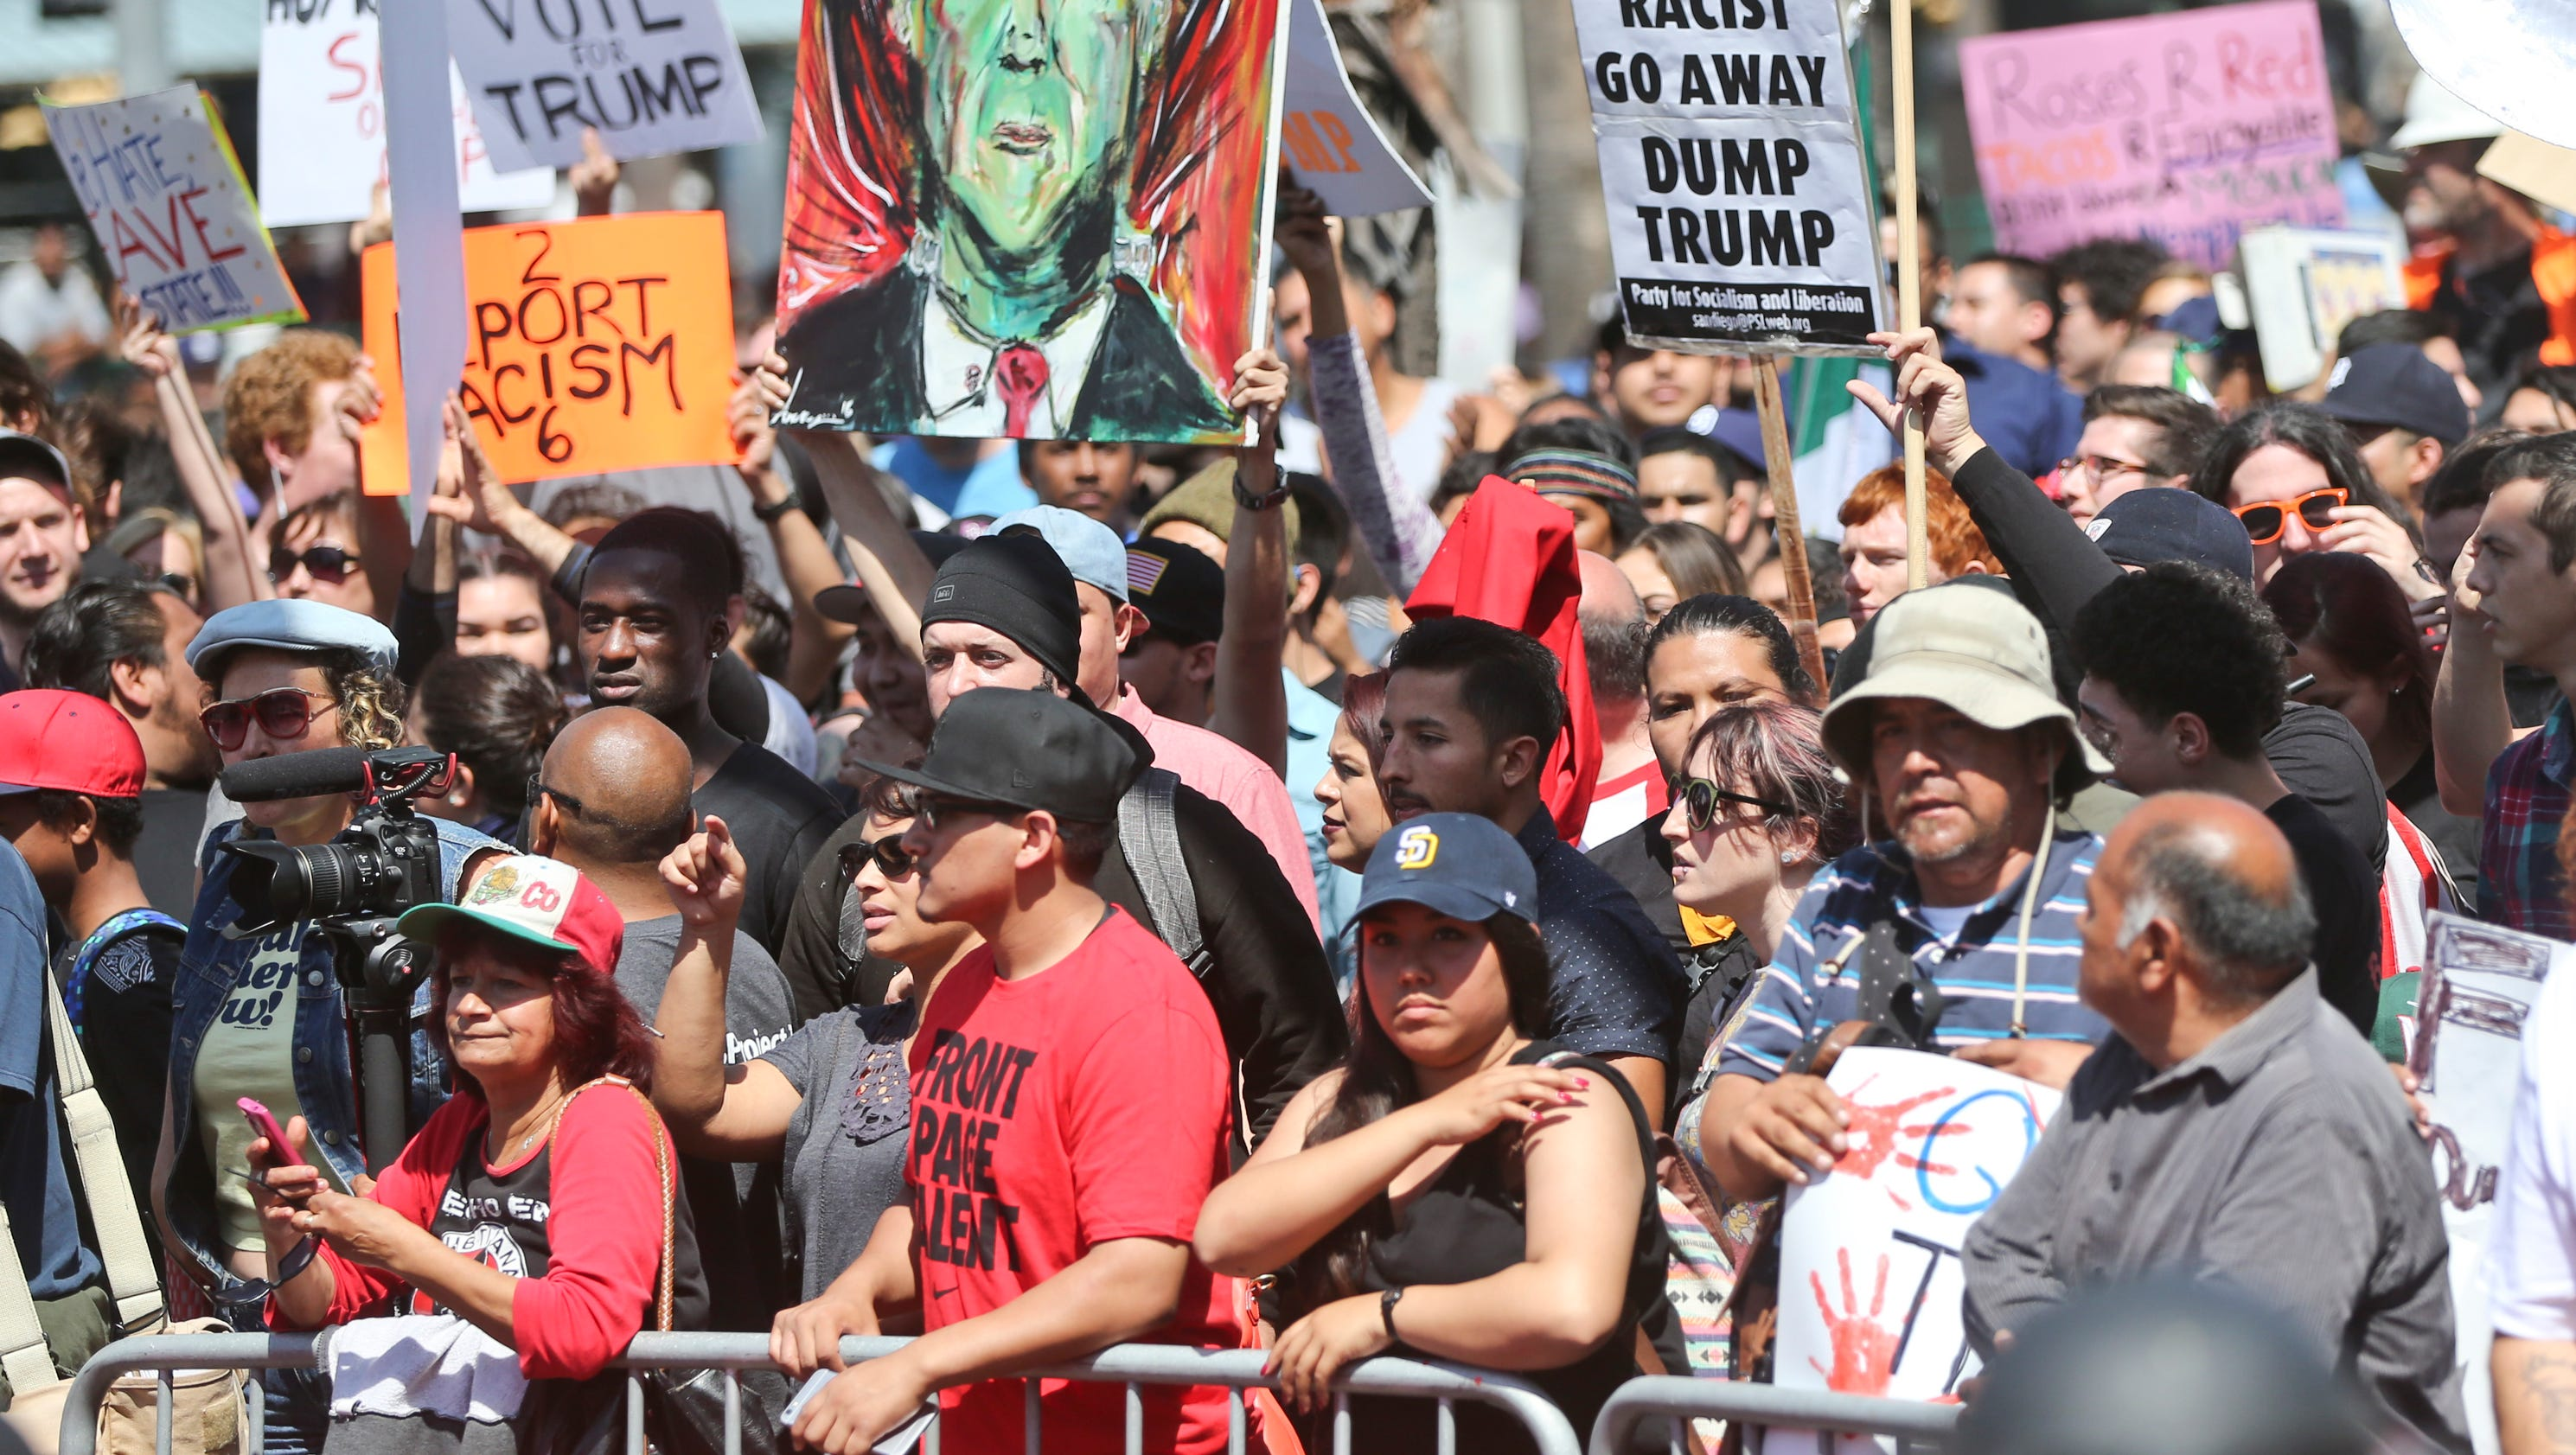 Protesters clash with supporters at San Diego Trump rally